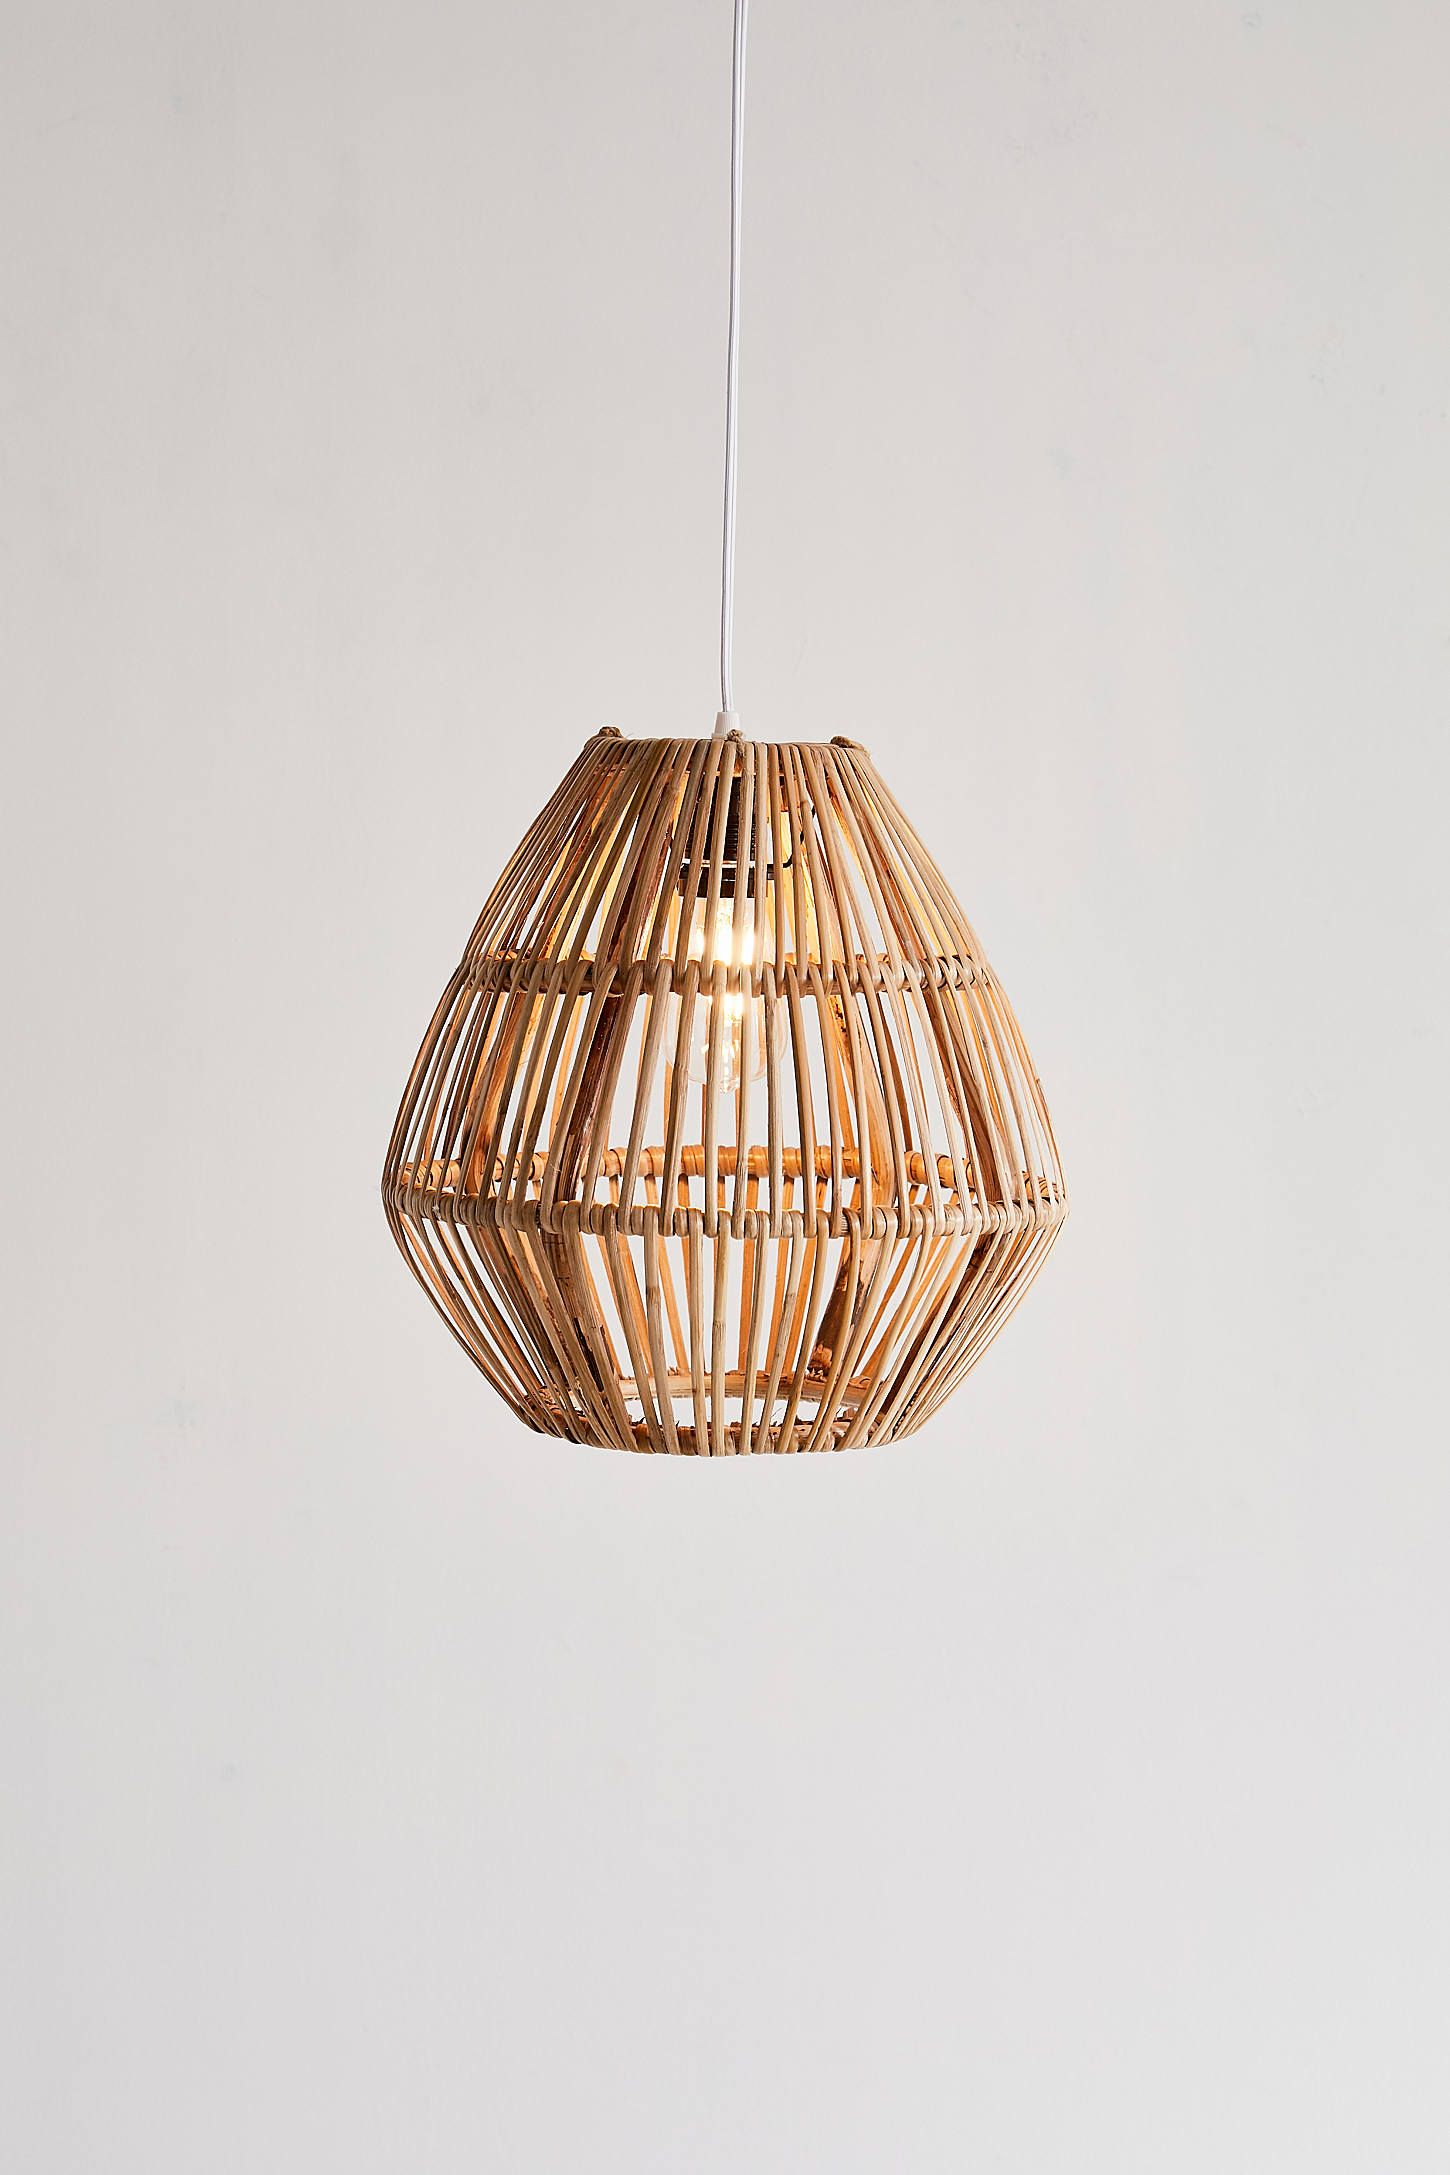 Bamboo Woven Pendant Light Urban Outfitters Bedroom Pendant